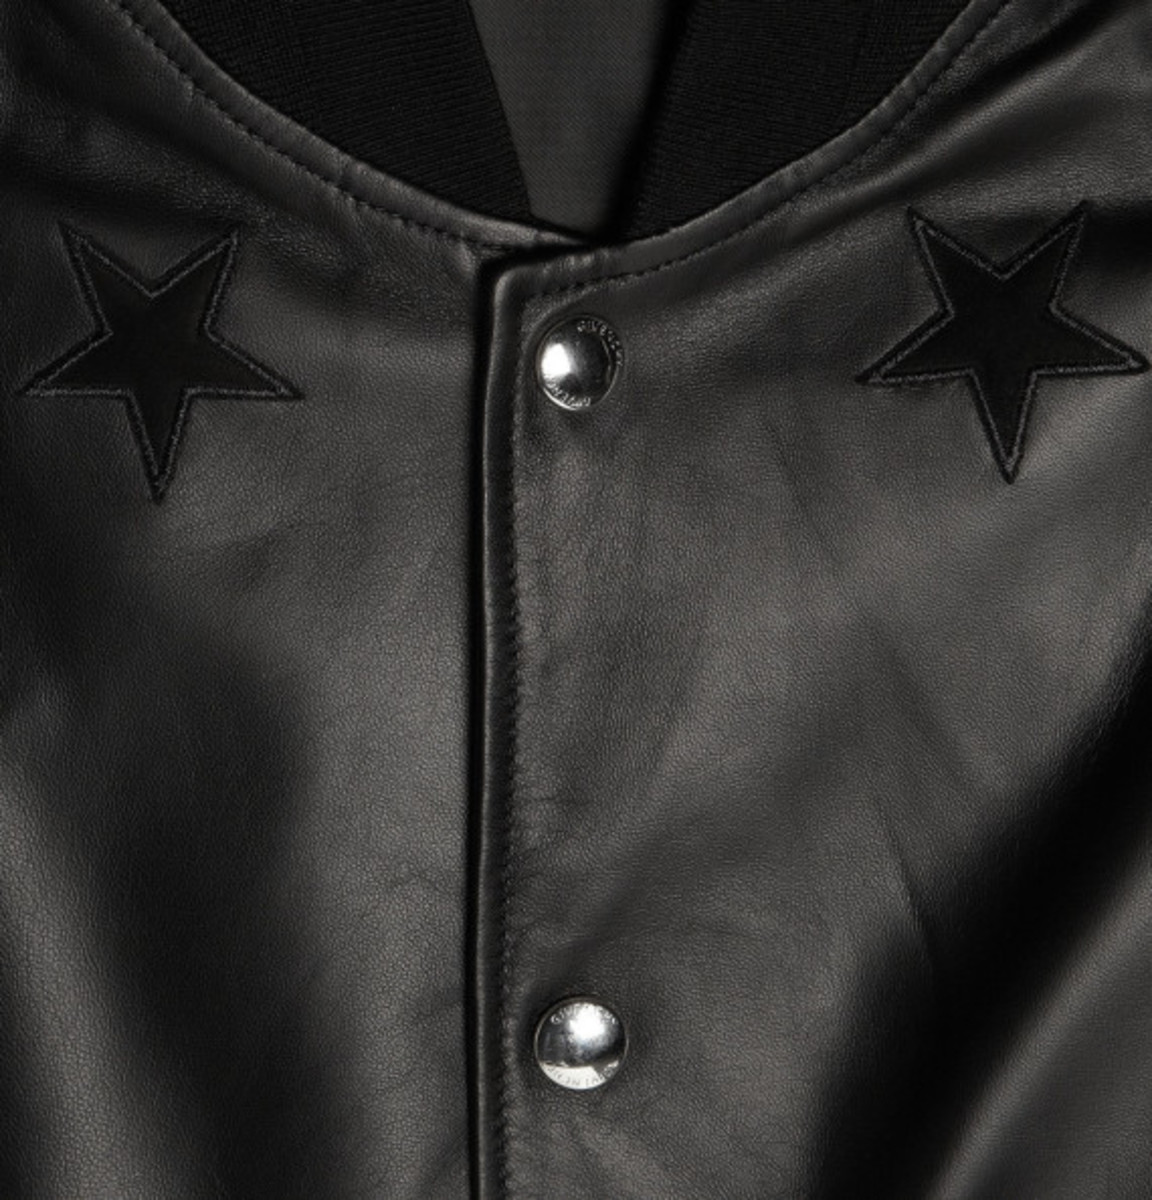 givenchy-leather-embroidered-star-baseball-jacket-03